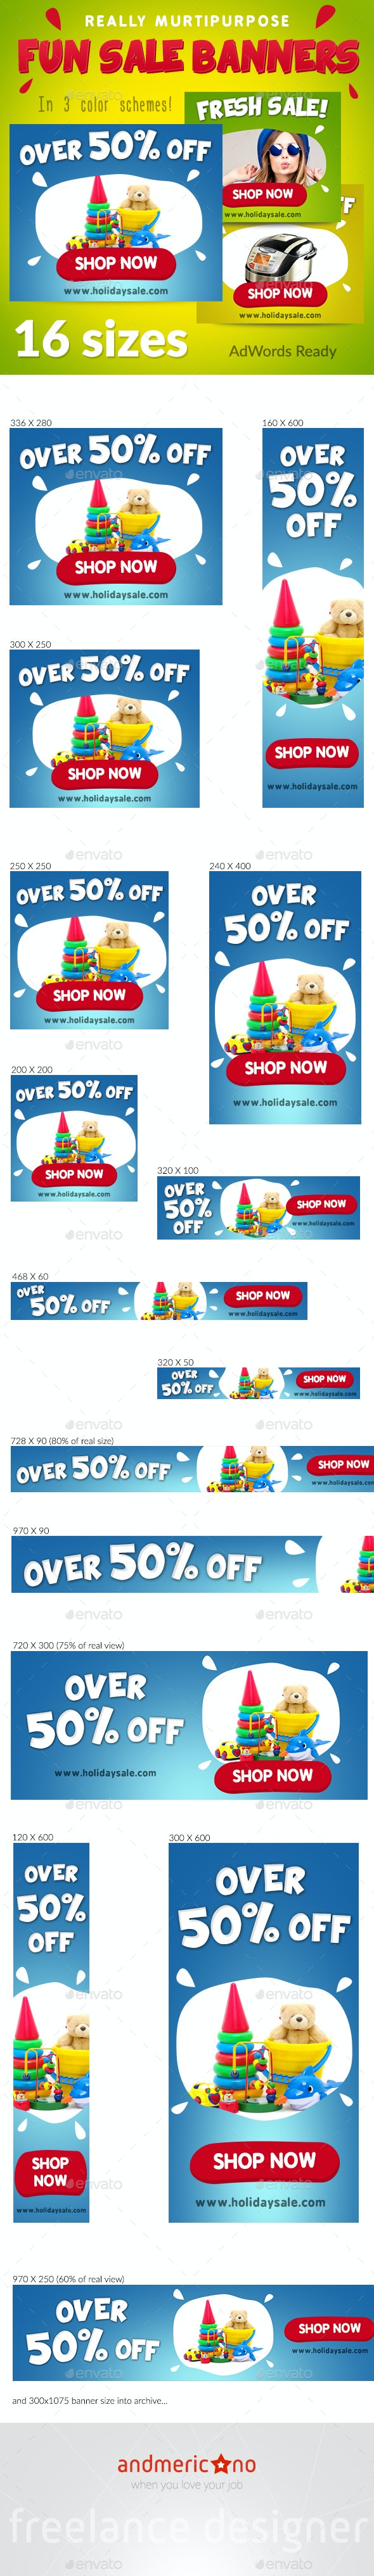 Fun Holidays Banners Set - Banners & Ads Web Elements